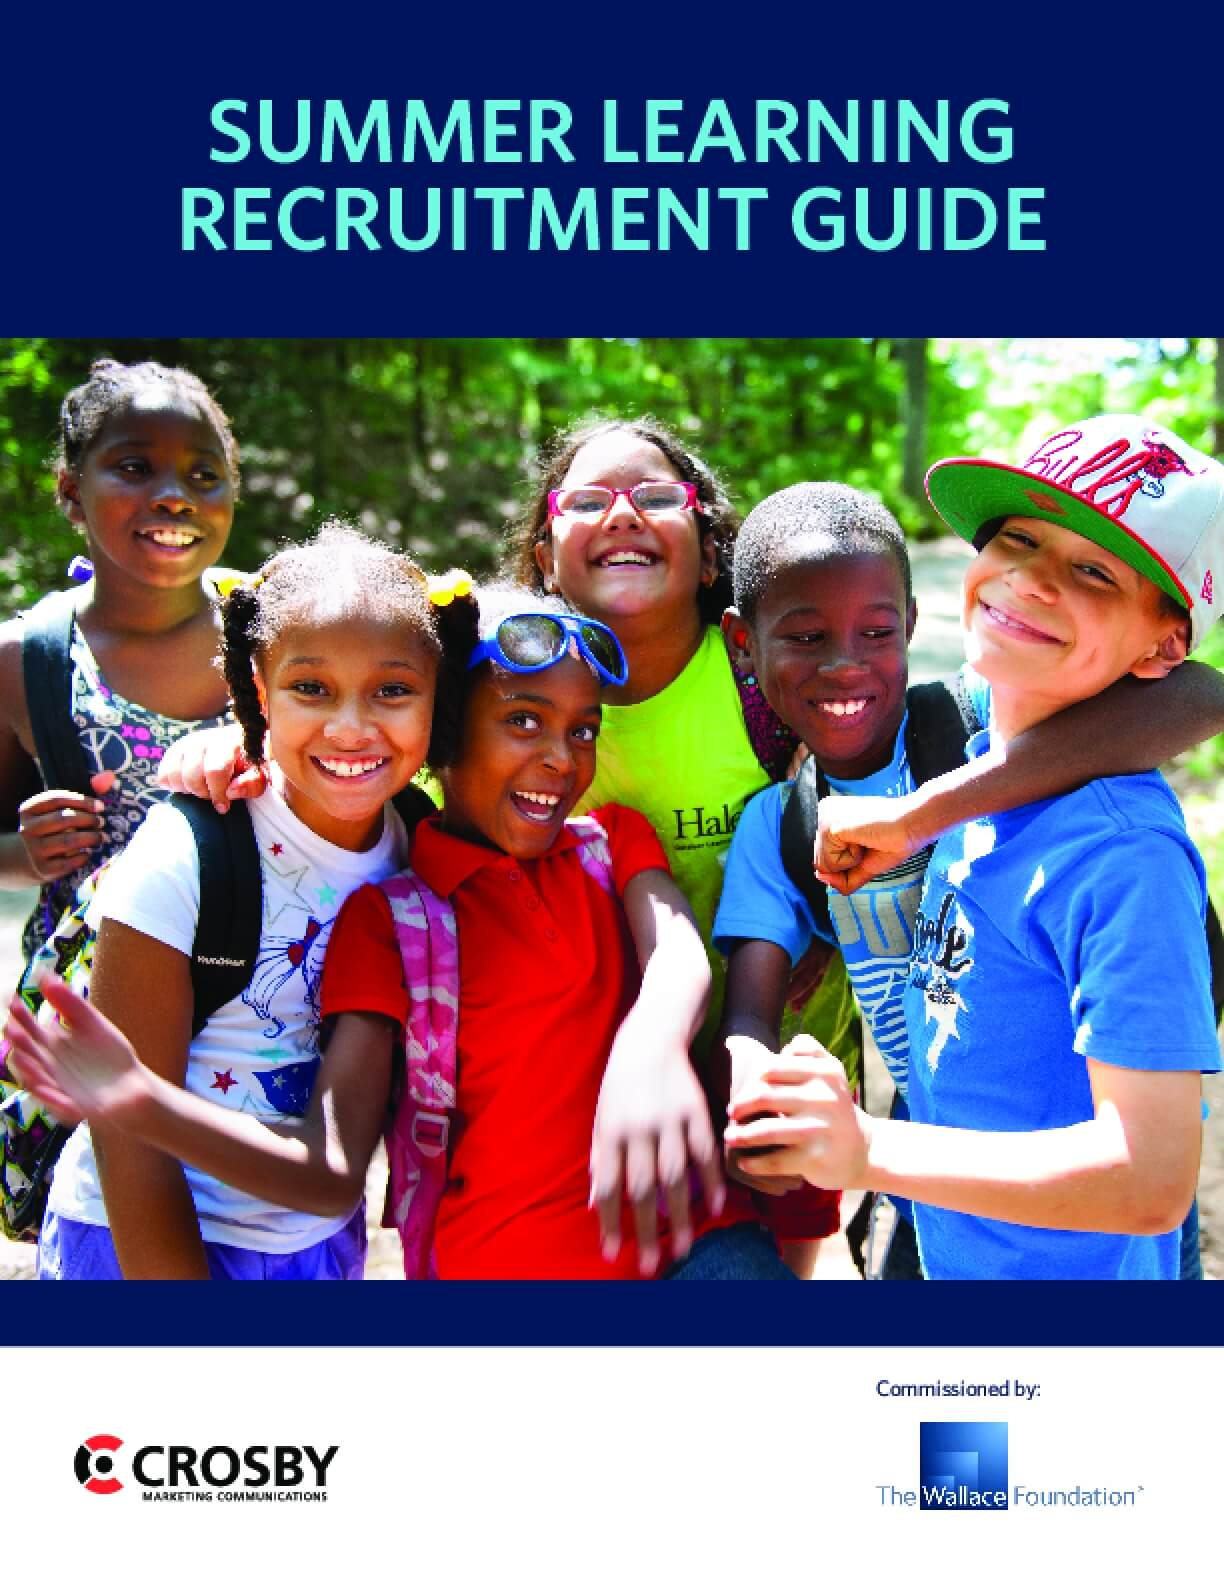 Summer Learning Recruitment Guide